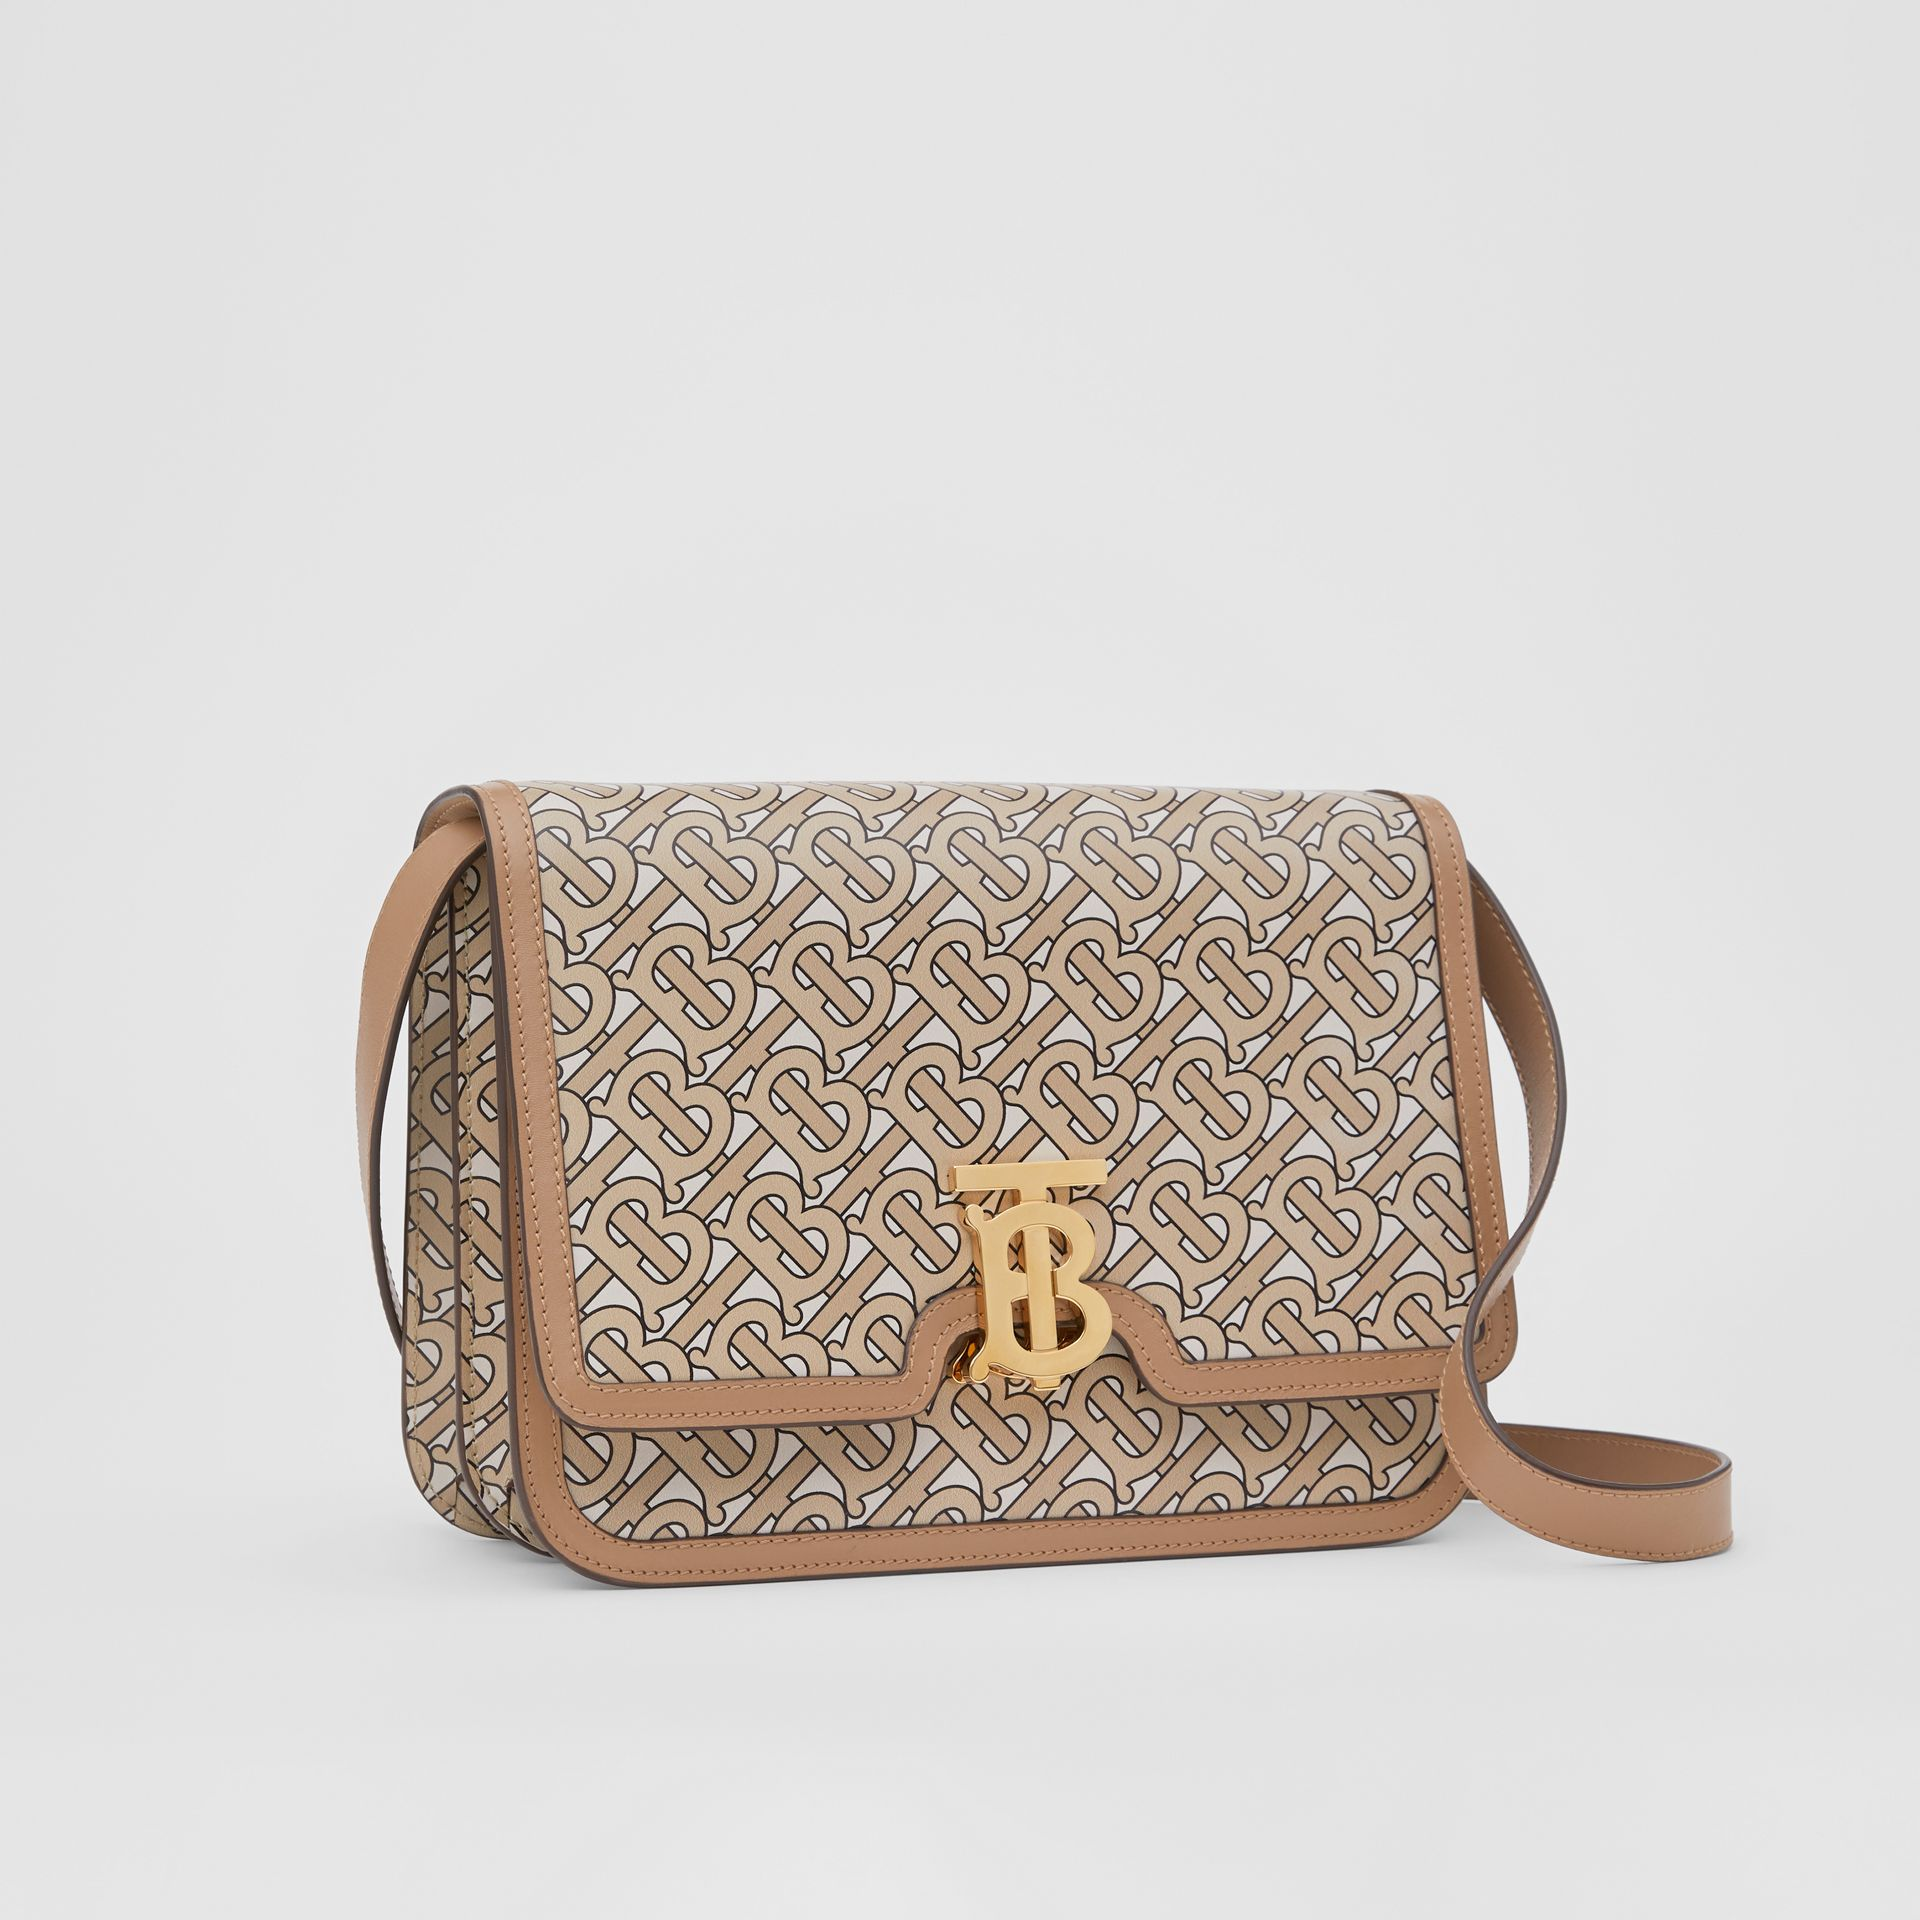 Medium Monogram Print Leather TB Bag in Beige - Women | Burberry United States - gallery image 6